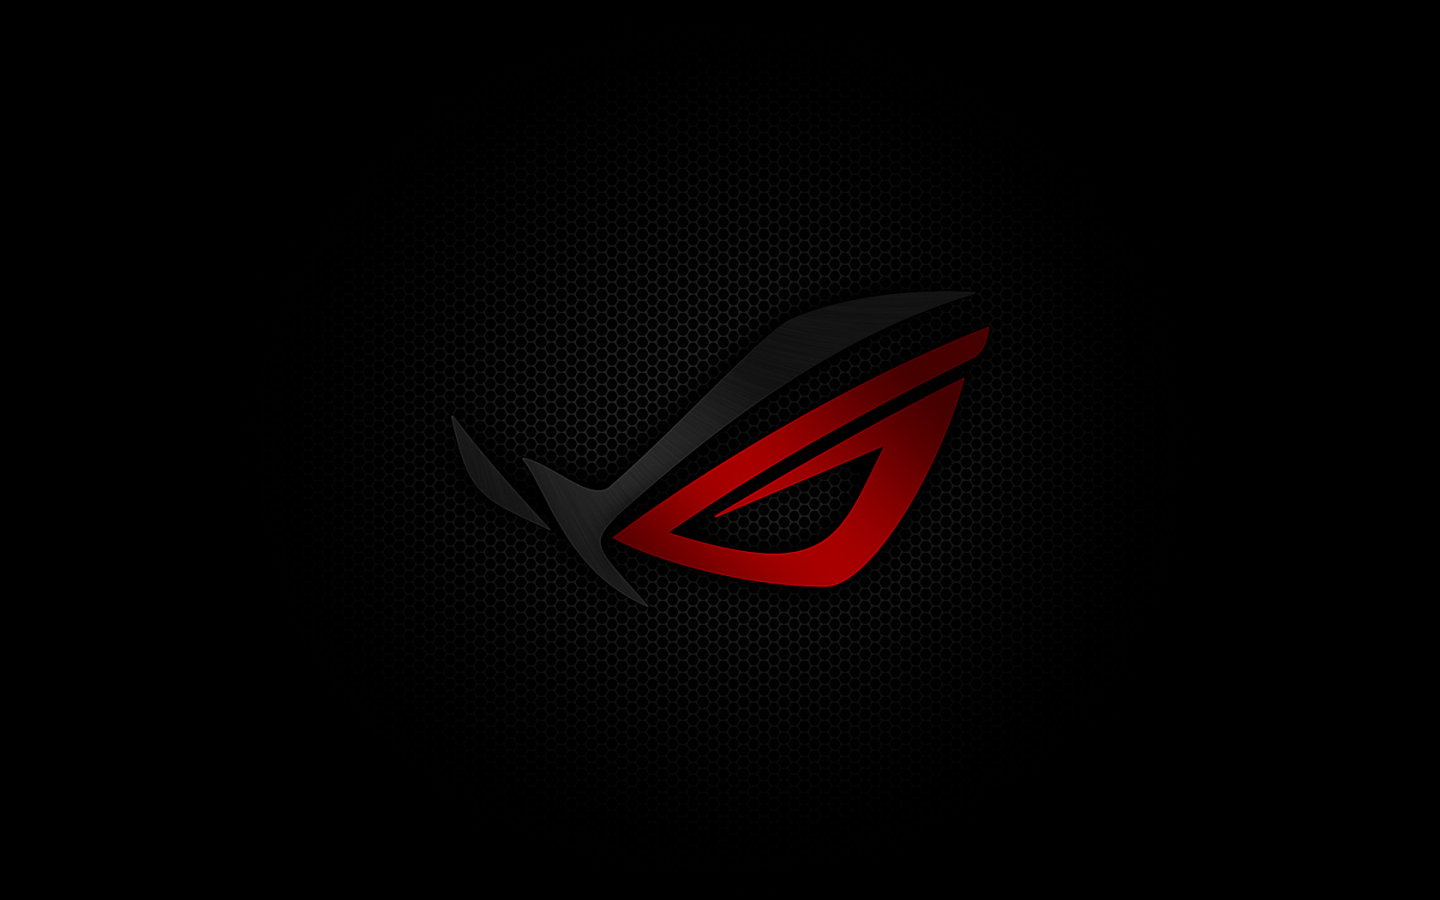 Free Asus Rog Wallpaper Pack By Blackout1911